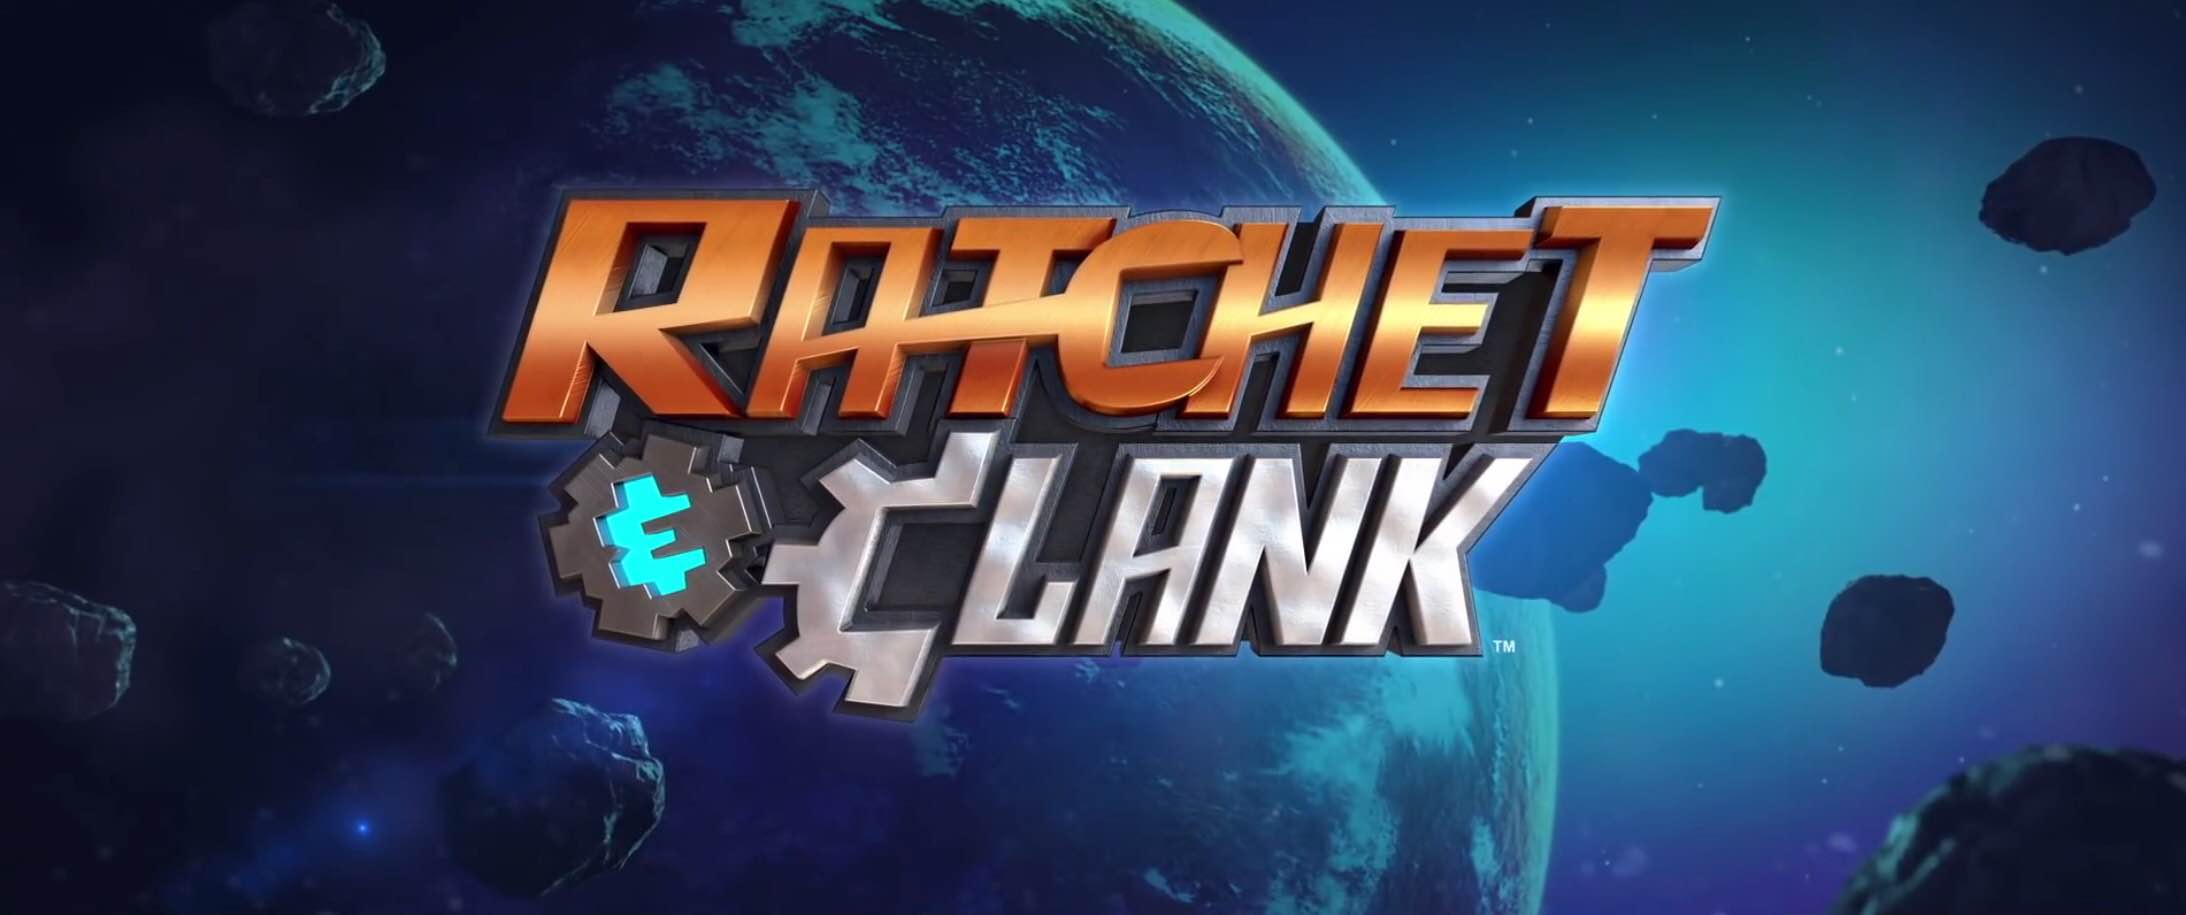 Explosive New Trailer For Ratchet & Clank Is Here!